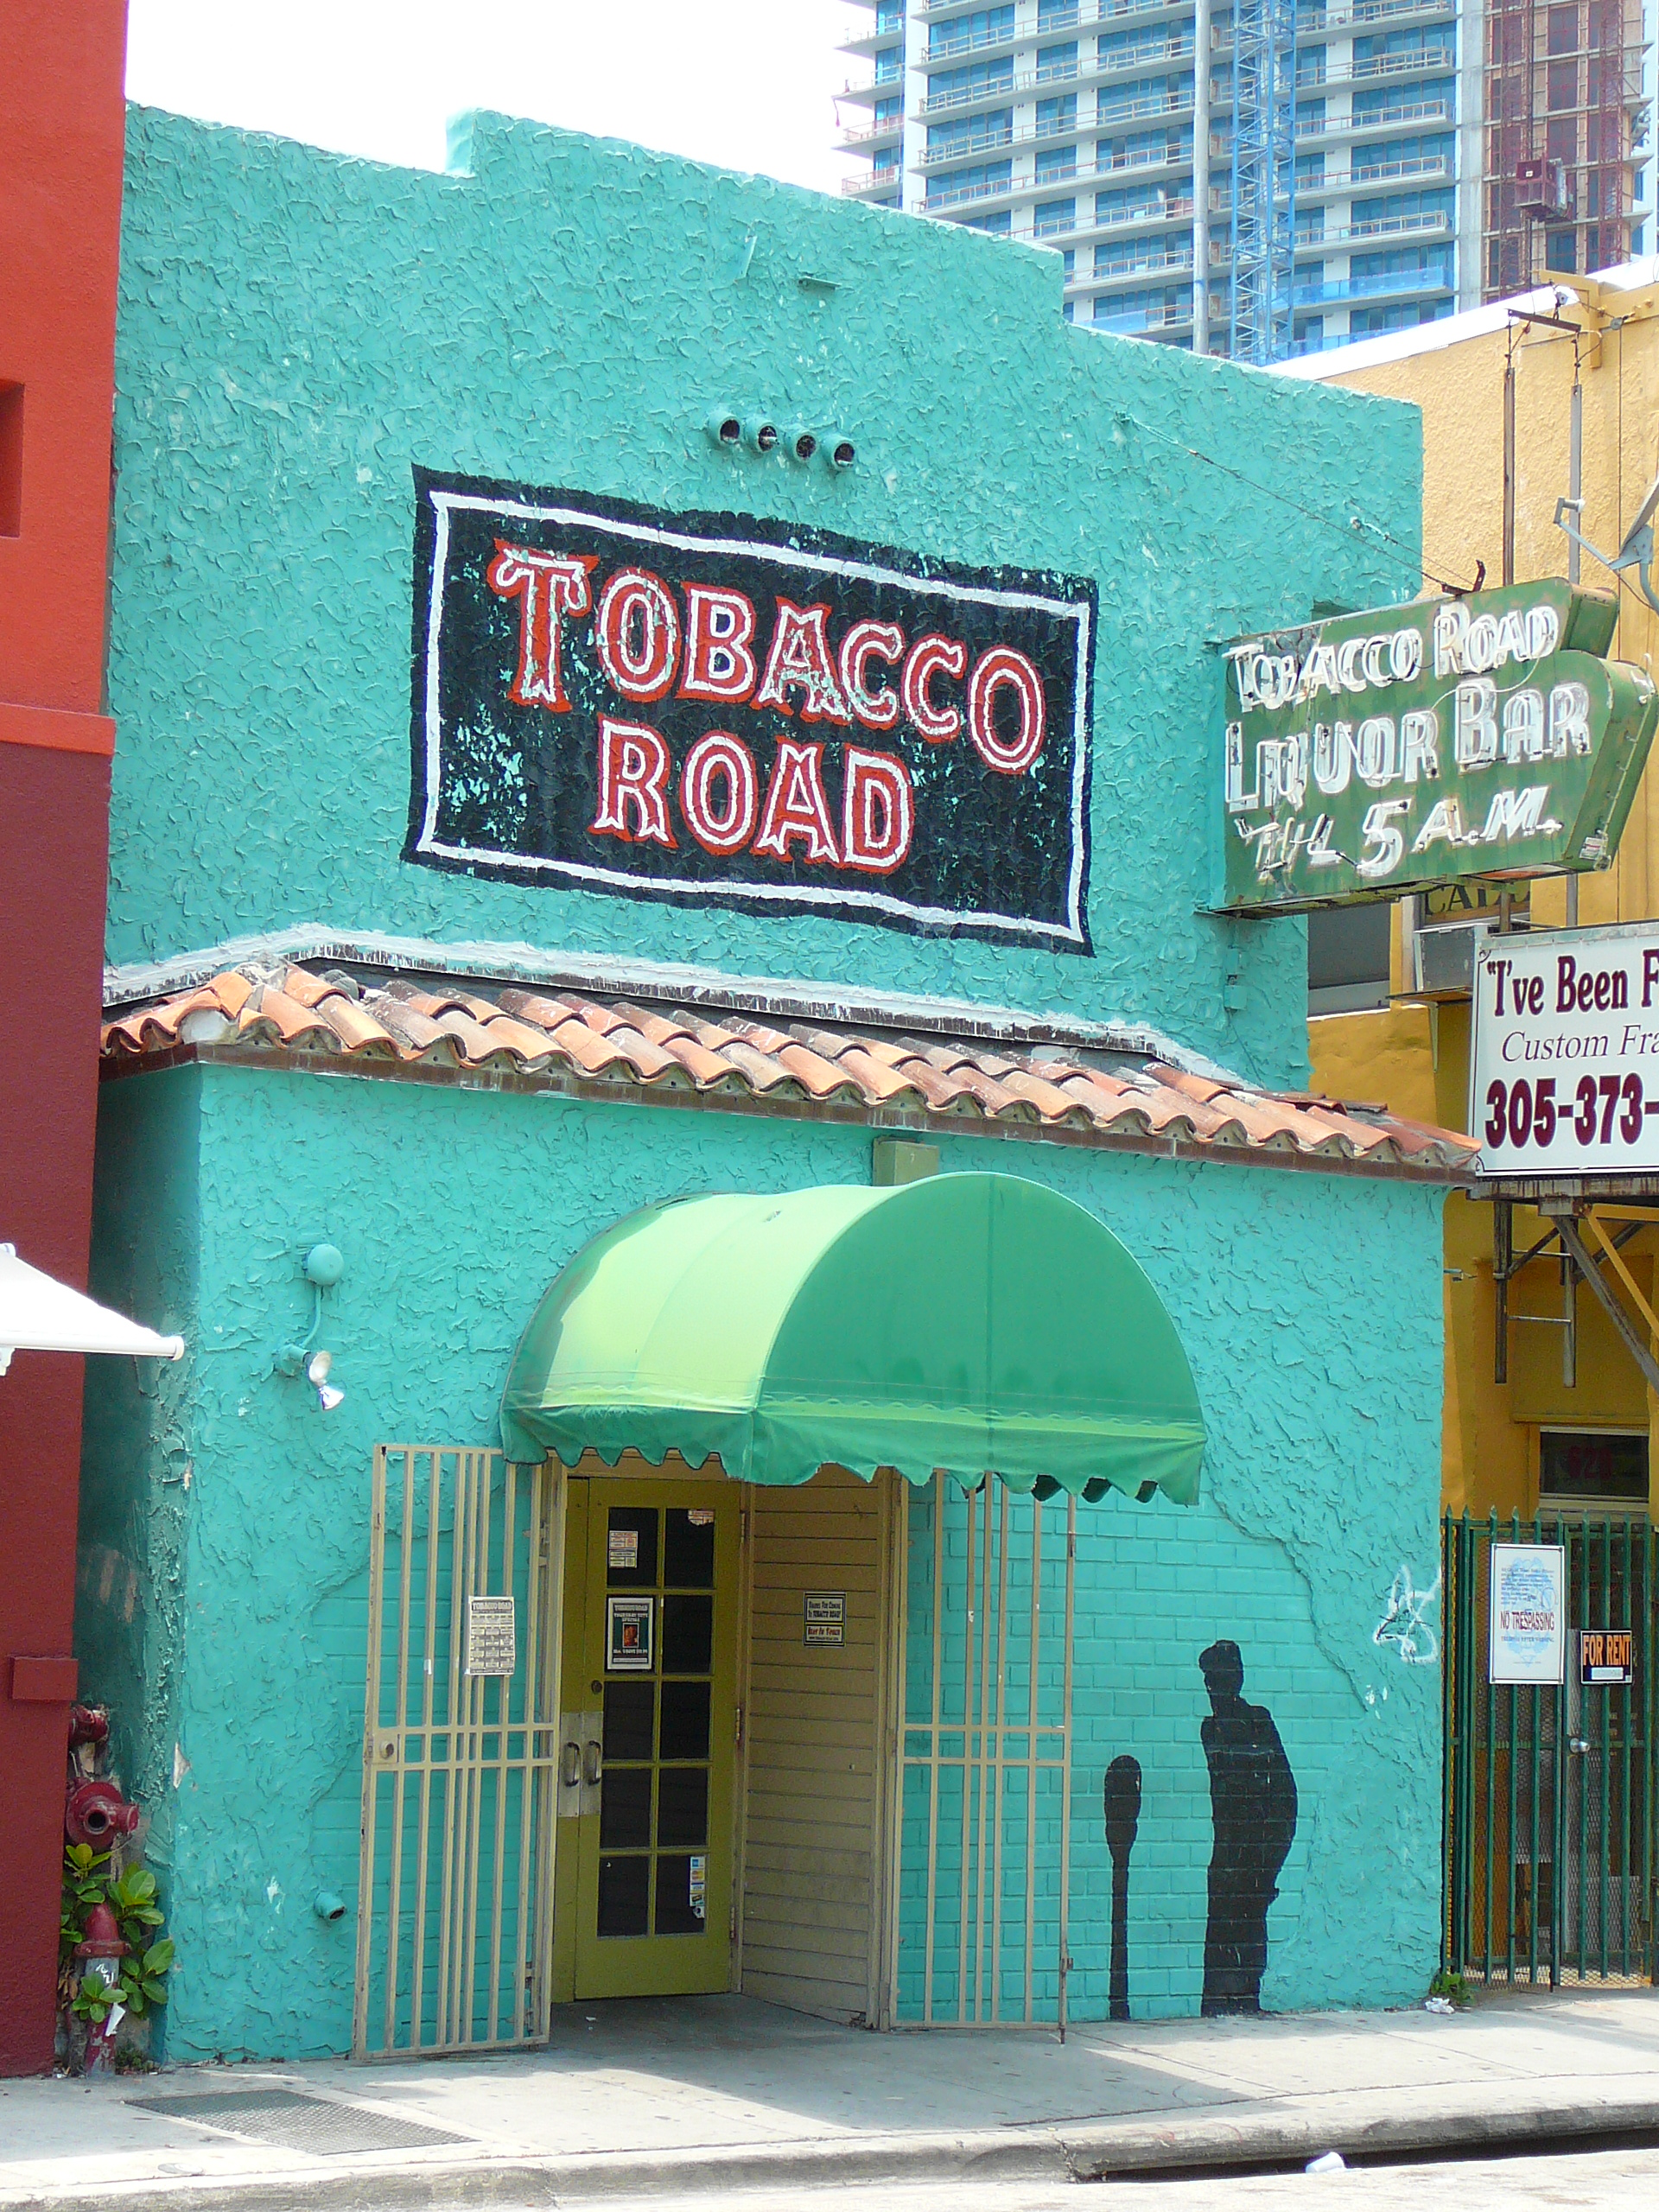 Tobacco Road in Miami